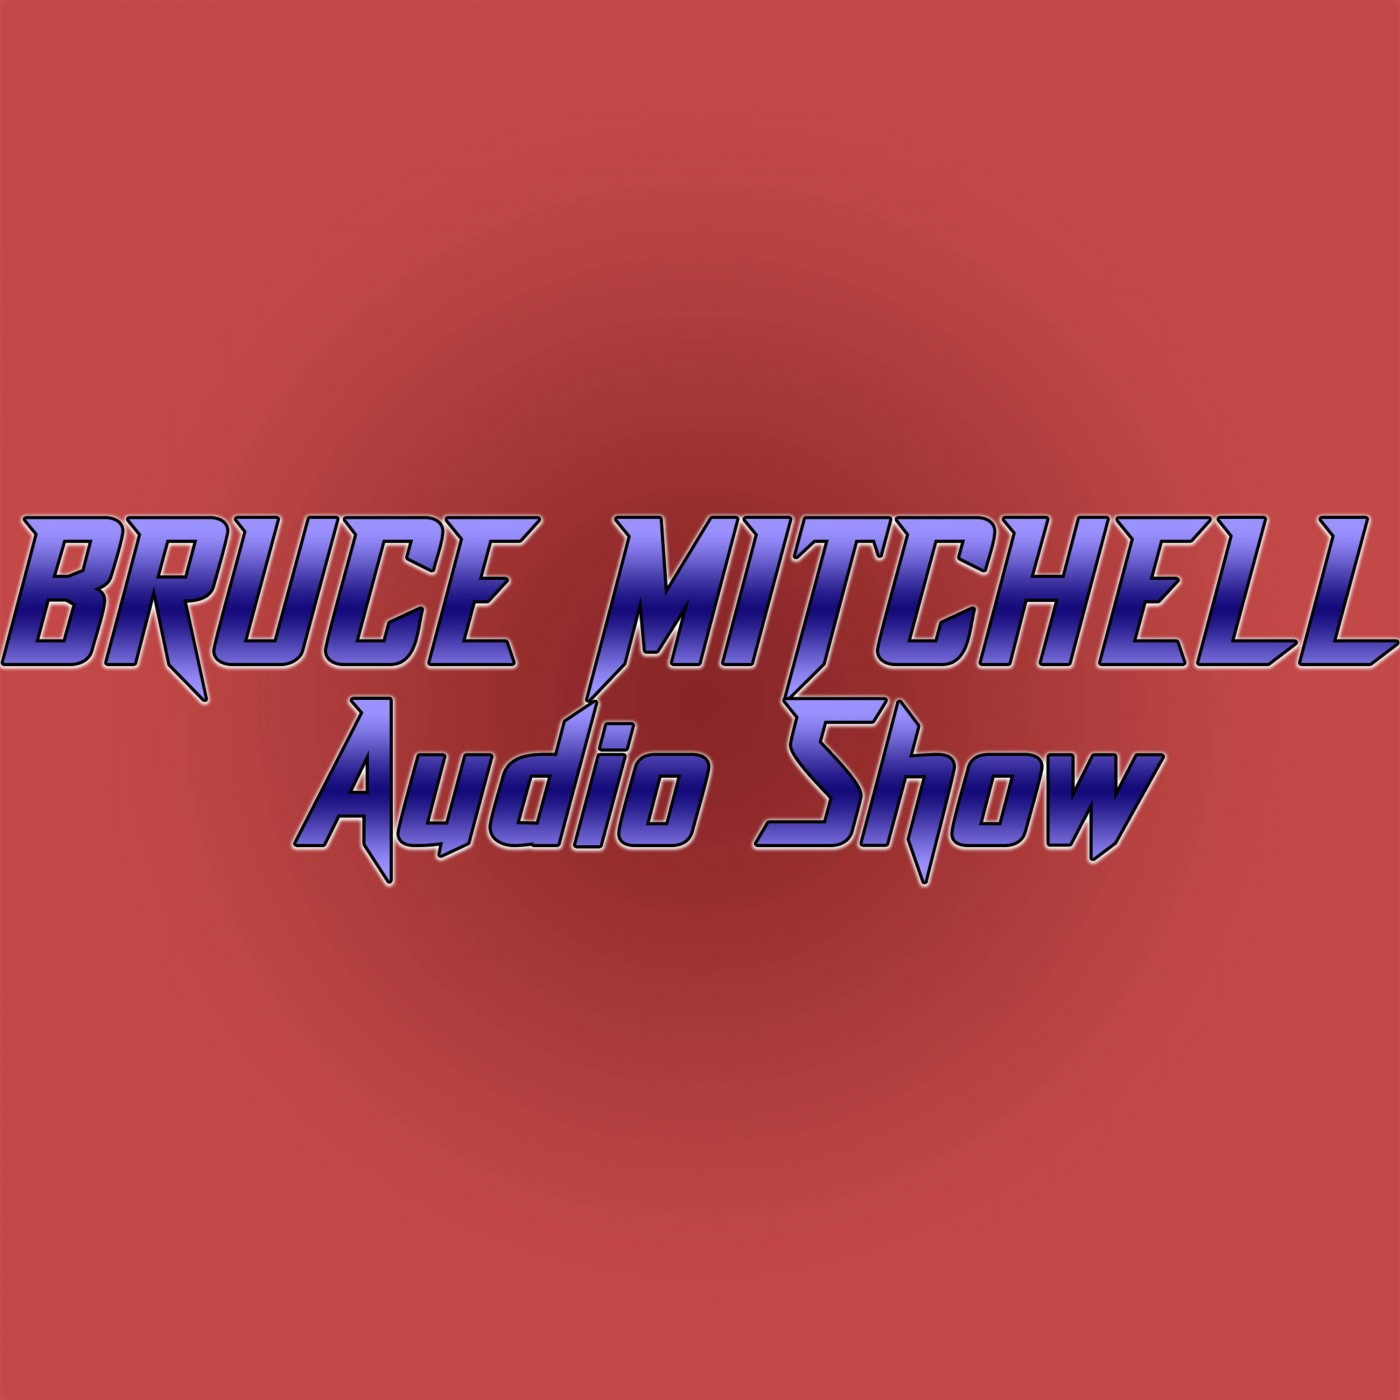 Bruce Mitchell Audio Show: The Life and Times of Bobby Eaton with KC O'Connor